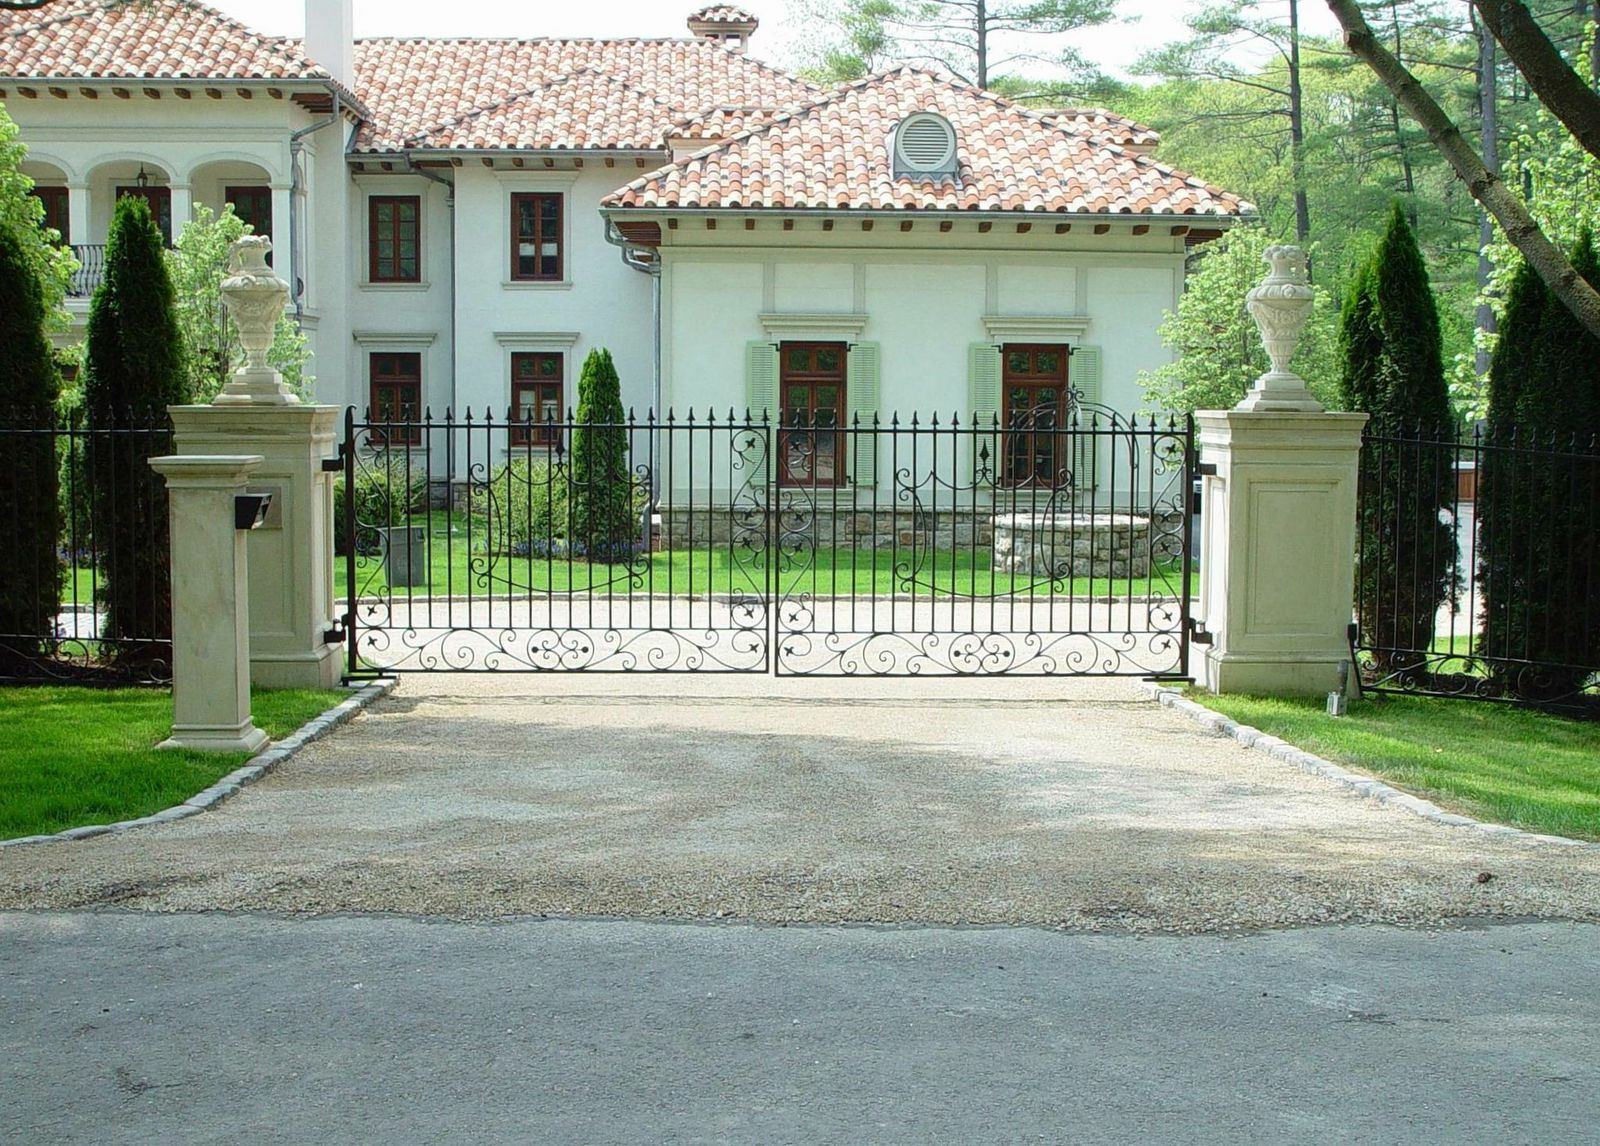 Custom Wrought Iron Gate Design With Concrete Pillars, Stone Statues, And  Wrapped Keypad Post